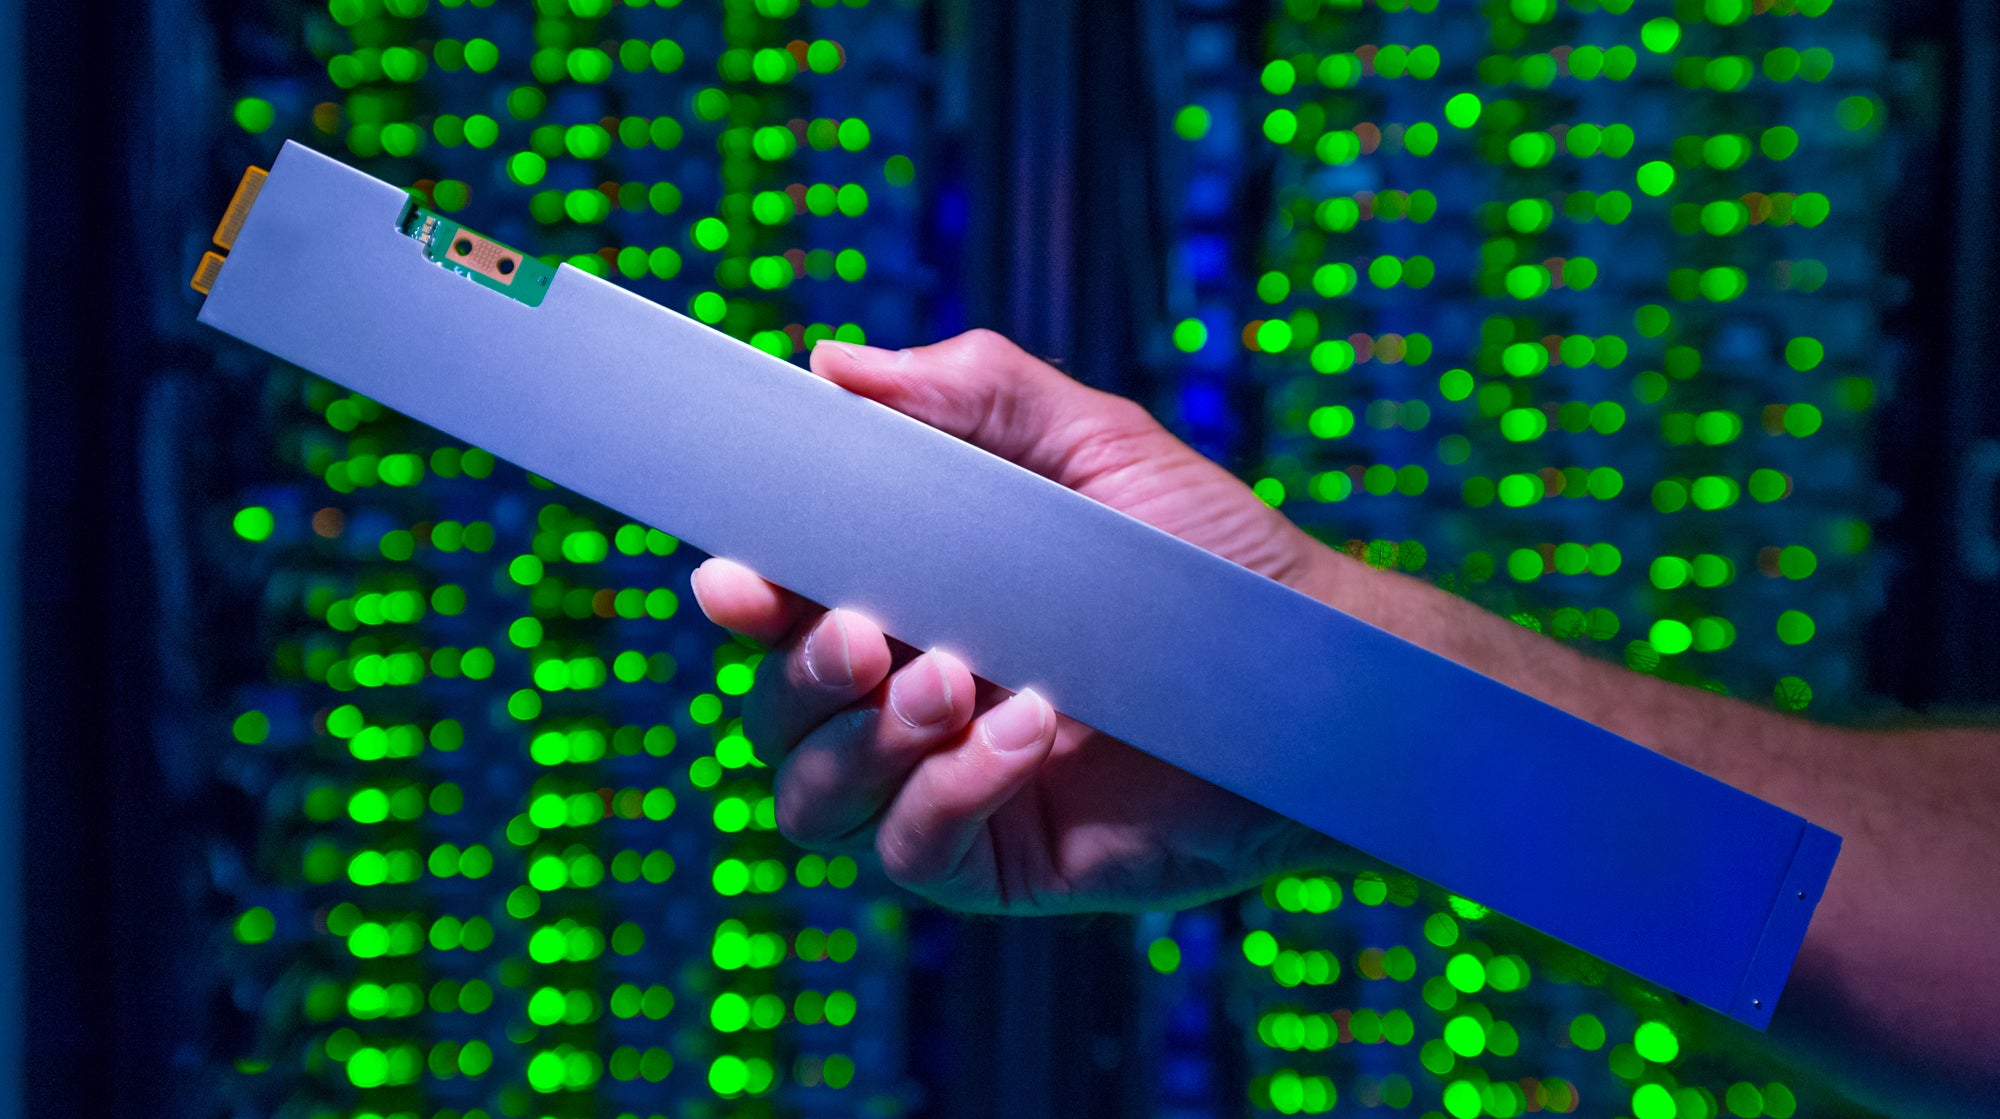 Intel Says It Made The 'World's Densest' SSD By Cramming 32TB Into The Shape Of A Ruler